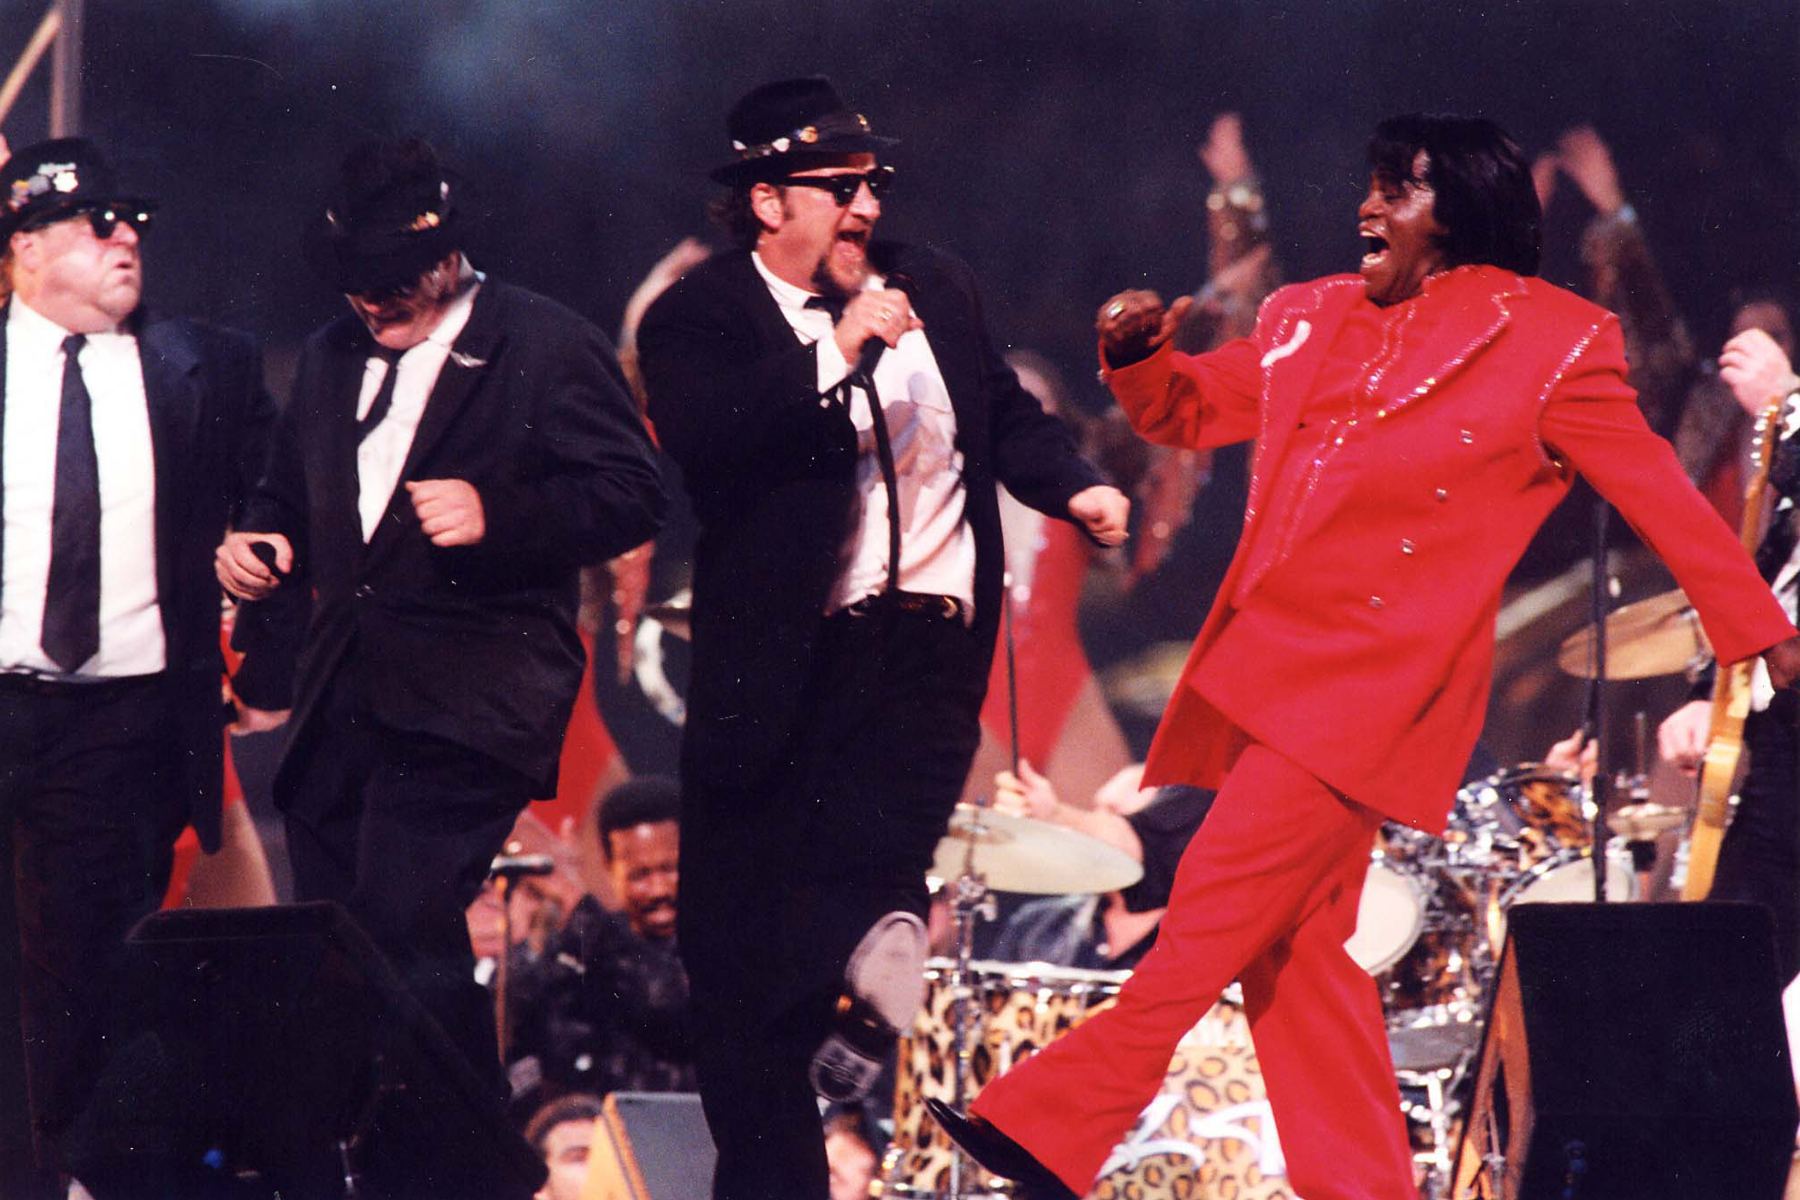 When the Blues Brothers Played the Super Bowl, and Other Halftime Disasters